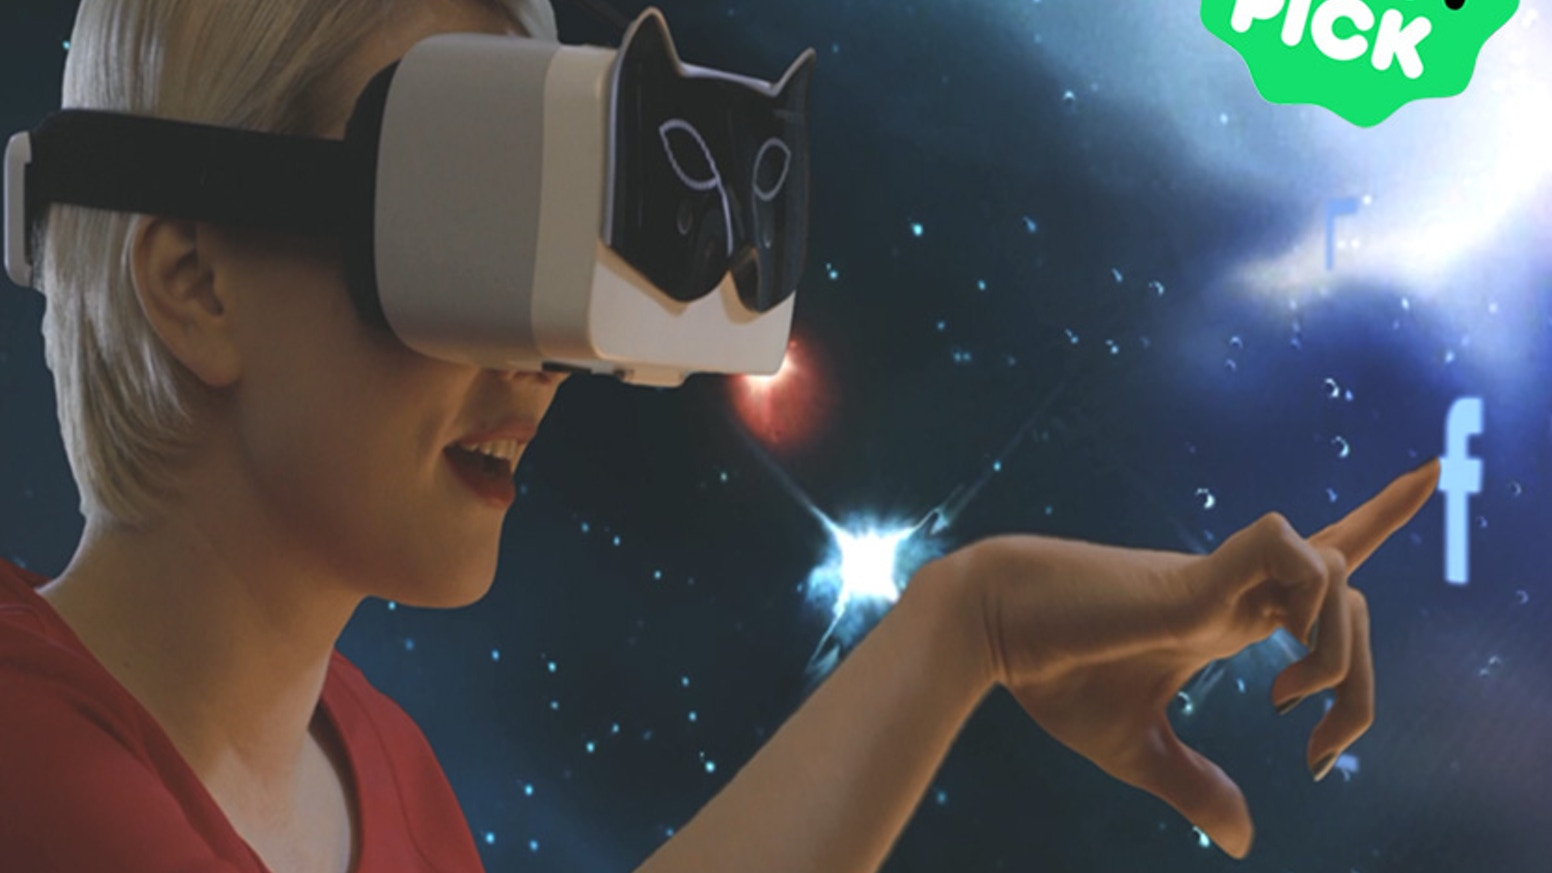 A Wireless Virtual Reality HMD that's Fashionable & Compact; Features 3D Gesture Input, Position Tracking, & Augmented Reality Overlays